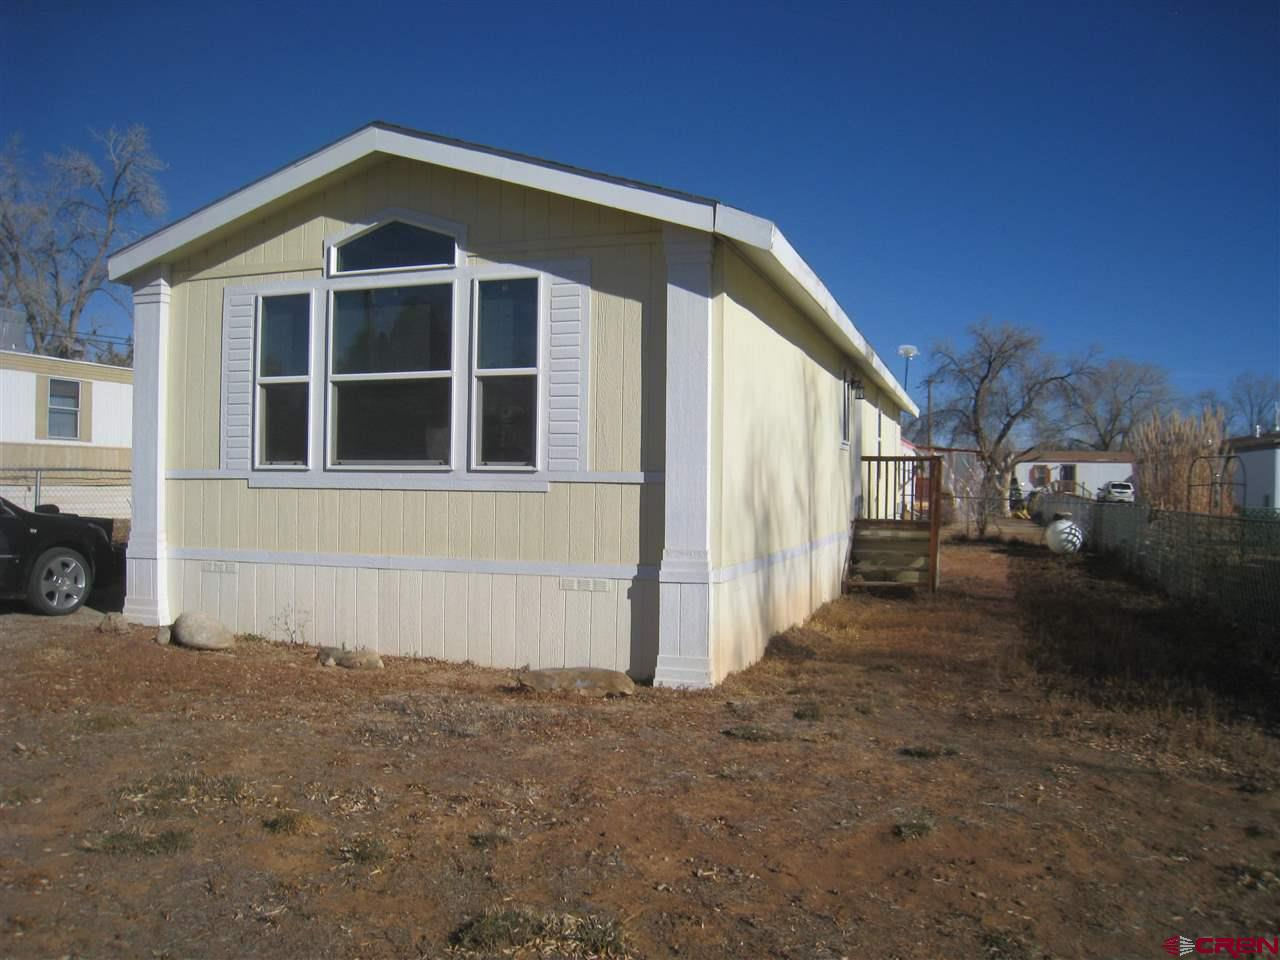 Very nice affordable housing in Cortez.  Space rent is $300 per month. Manager is on site.  2011 Cav (18' x 56').  No real estate included, manuafactured home only.